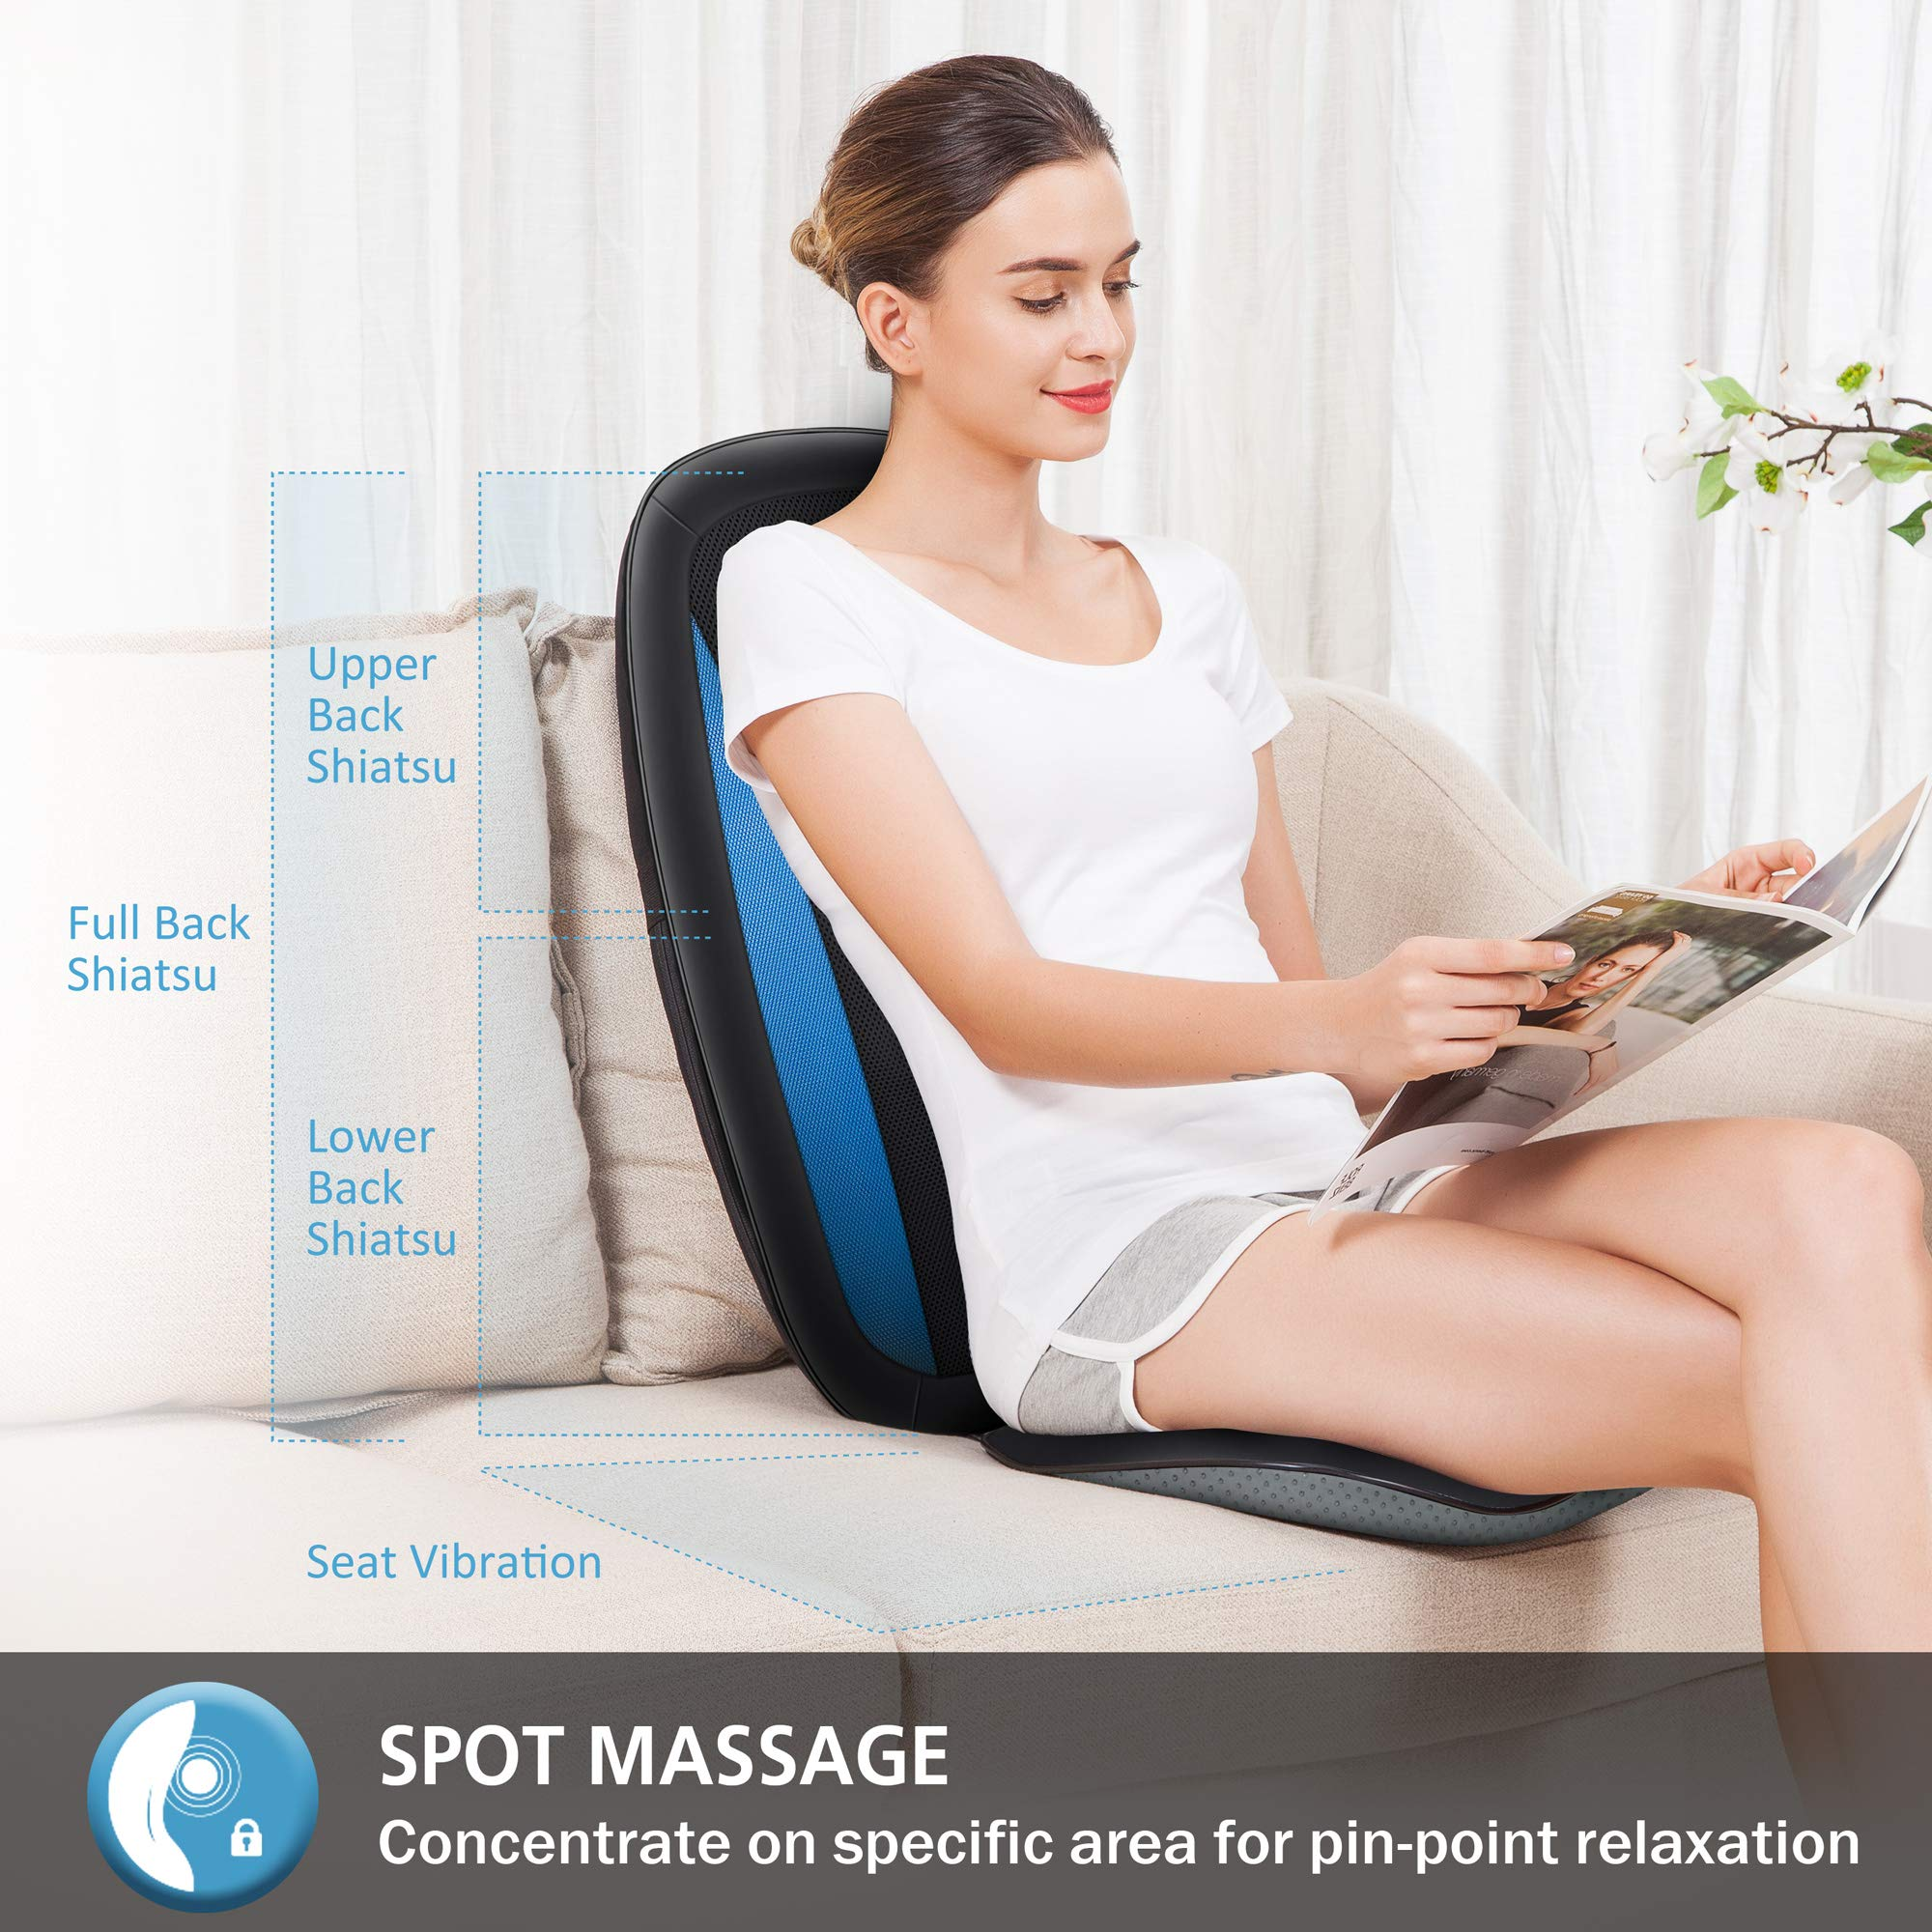 Comfier Shiatsu Back Massager with Heat -Deep Tissue Kneading Massage Seat Cushion, Massage Chair Pad for Full Back Pain Relief, Electric Body Massager for Home or Office Chair use by COMFIER (Image #3)